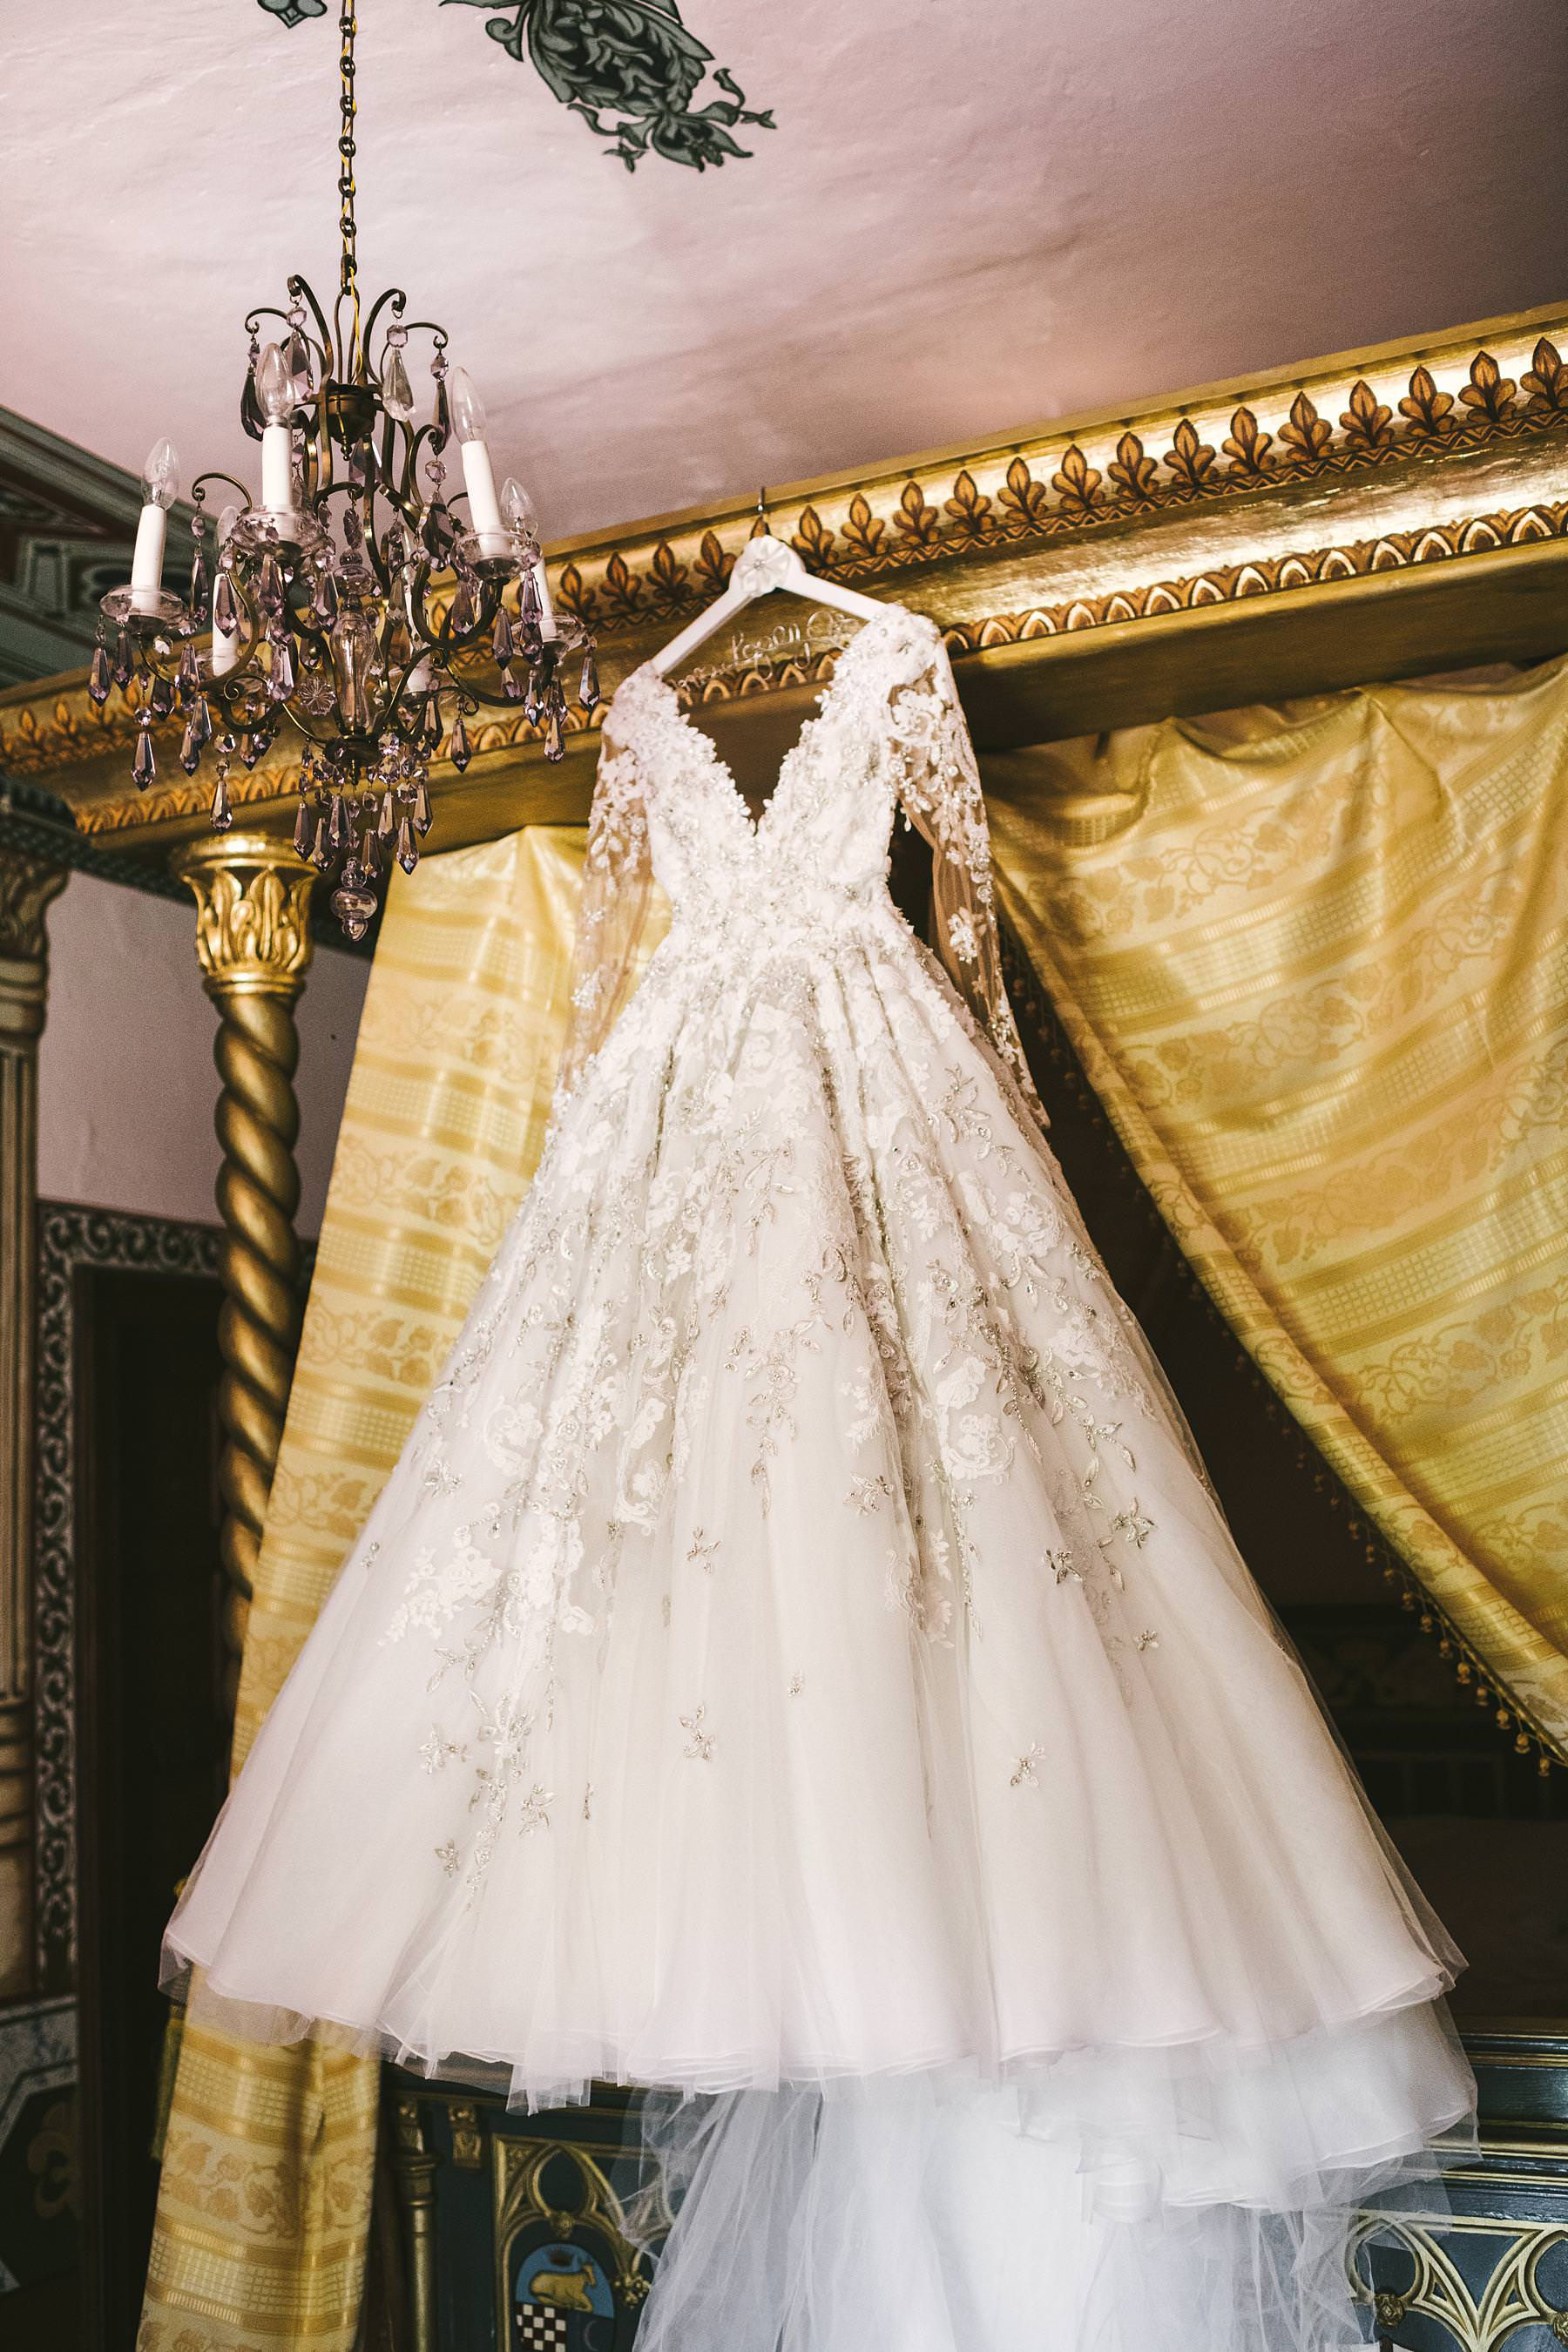 Elegant and gorgeous bride wedding dress by Ysa Makino at Valenzano Castle in Tuscany near Arezzo